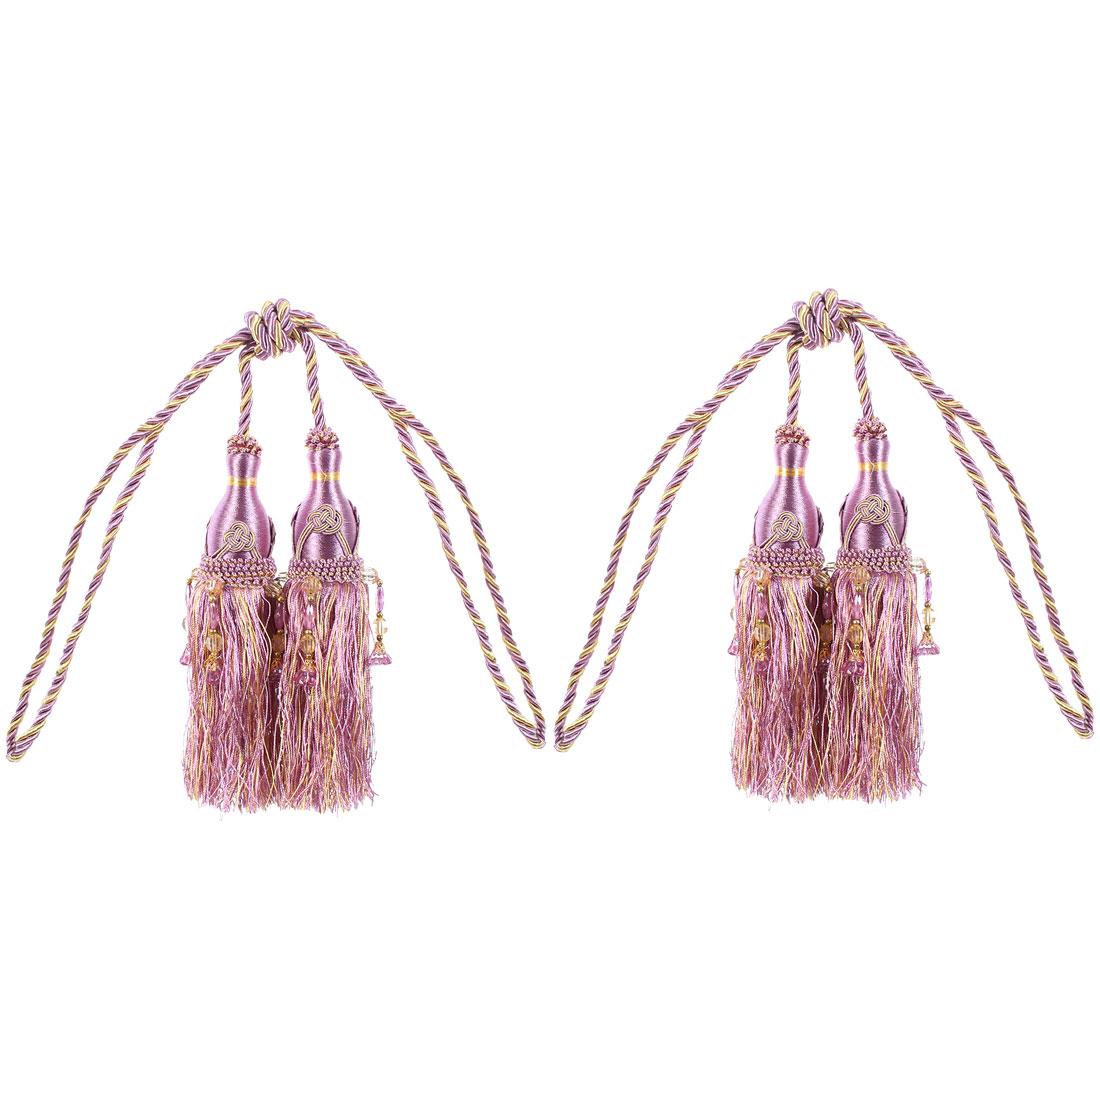 Curtain Drapery Hanging Beads Tassel Tiebacks 2Pcs